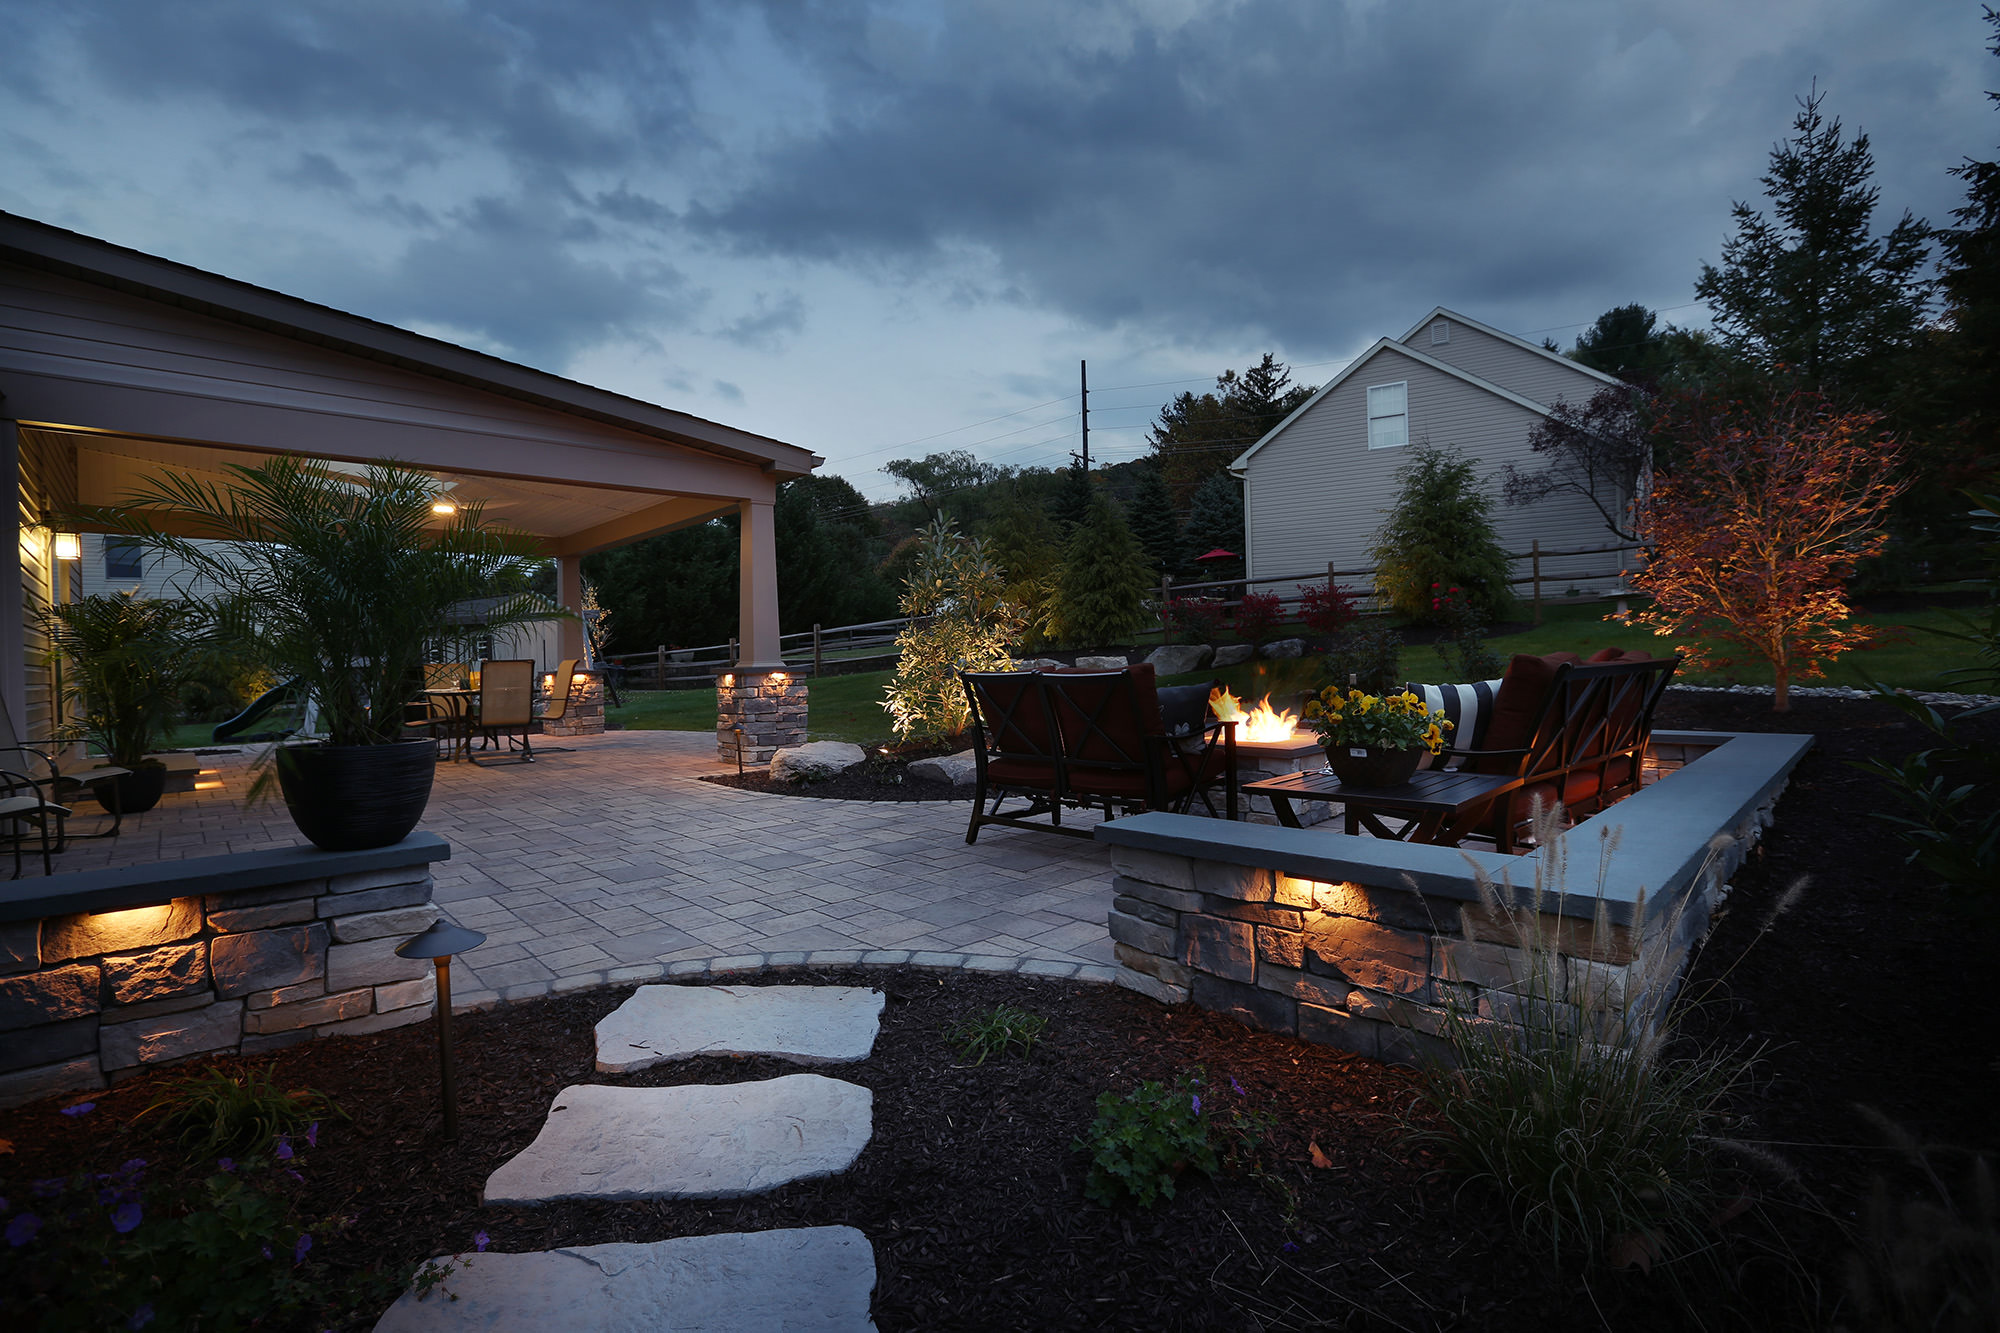 This stone wall doubles as wrap around seating for the fire pit.